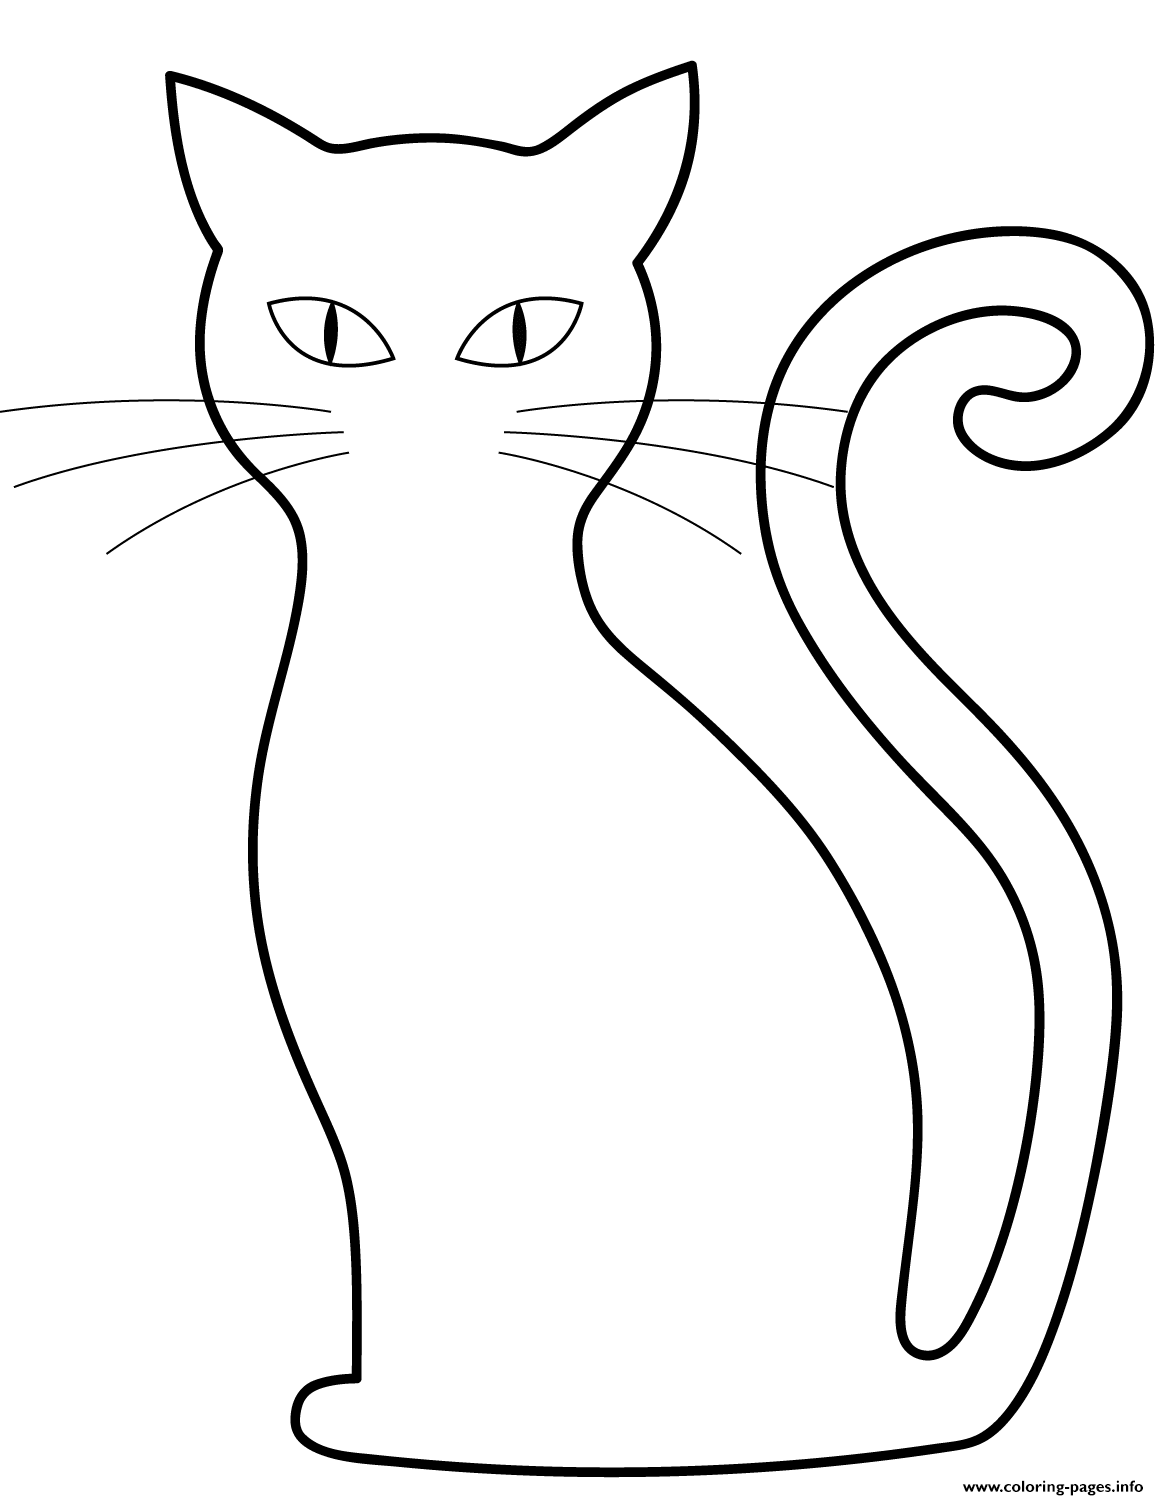 halloween black cat coloring pages black cat halloween coloring pages printable cat halloween coloring black pages